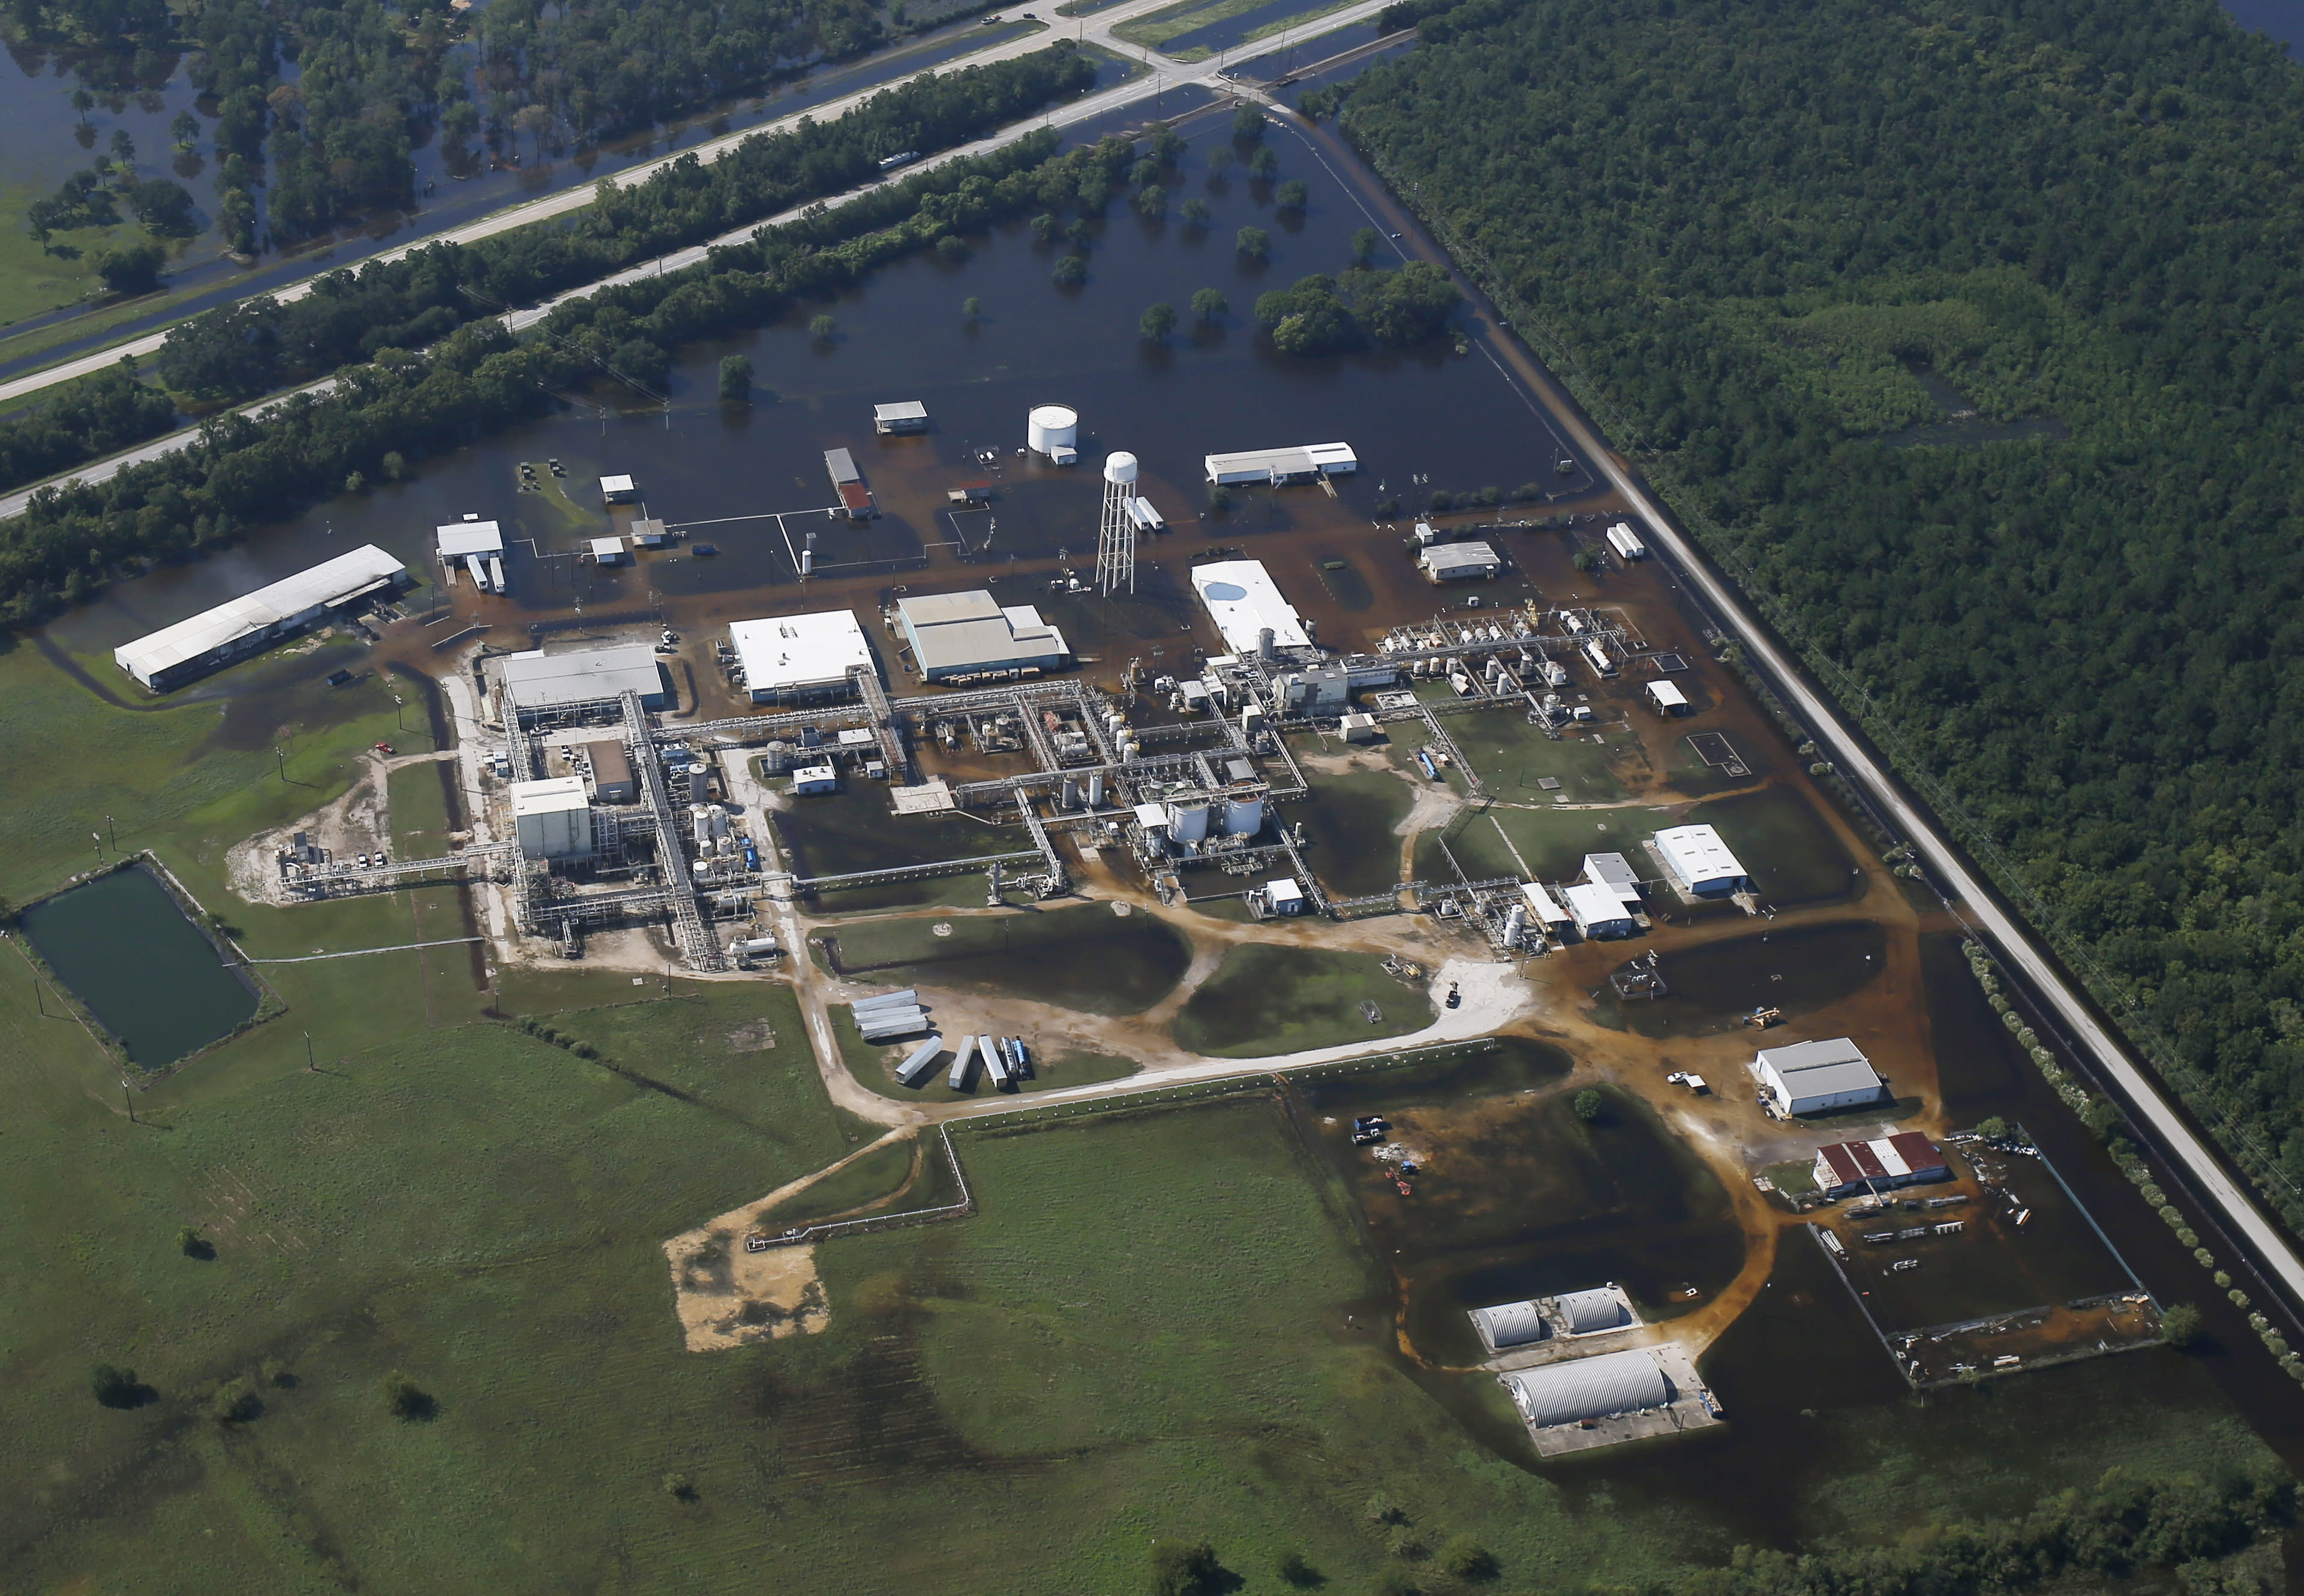 <p>The flooded plant of French chemical maker Arkema SA, which produces organic peroxides, is seen after fires were reported at the facilty in Crosby, Texas, Aug. 31, 2017. (Photo: Adrees Latif/Reuters) </p>